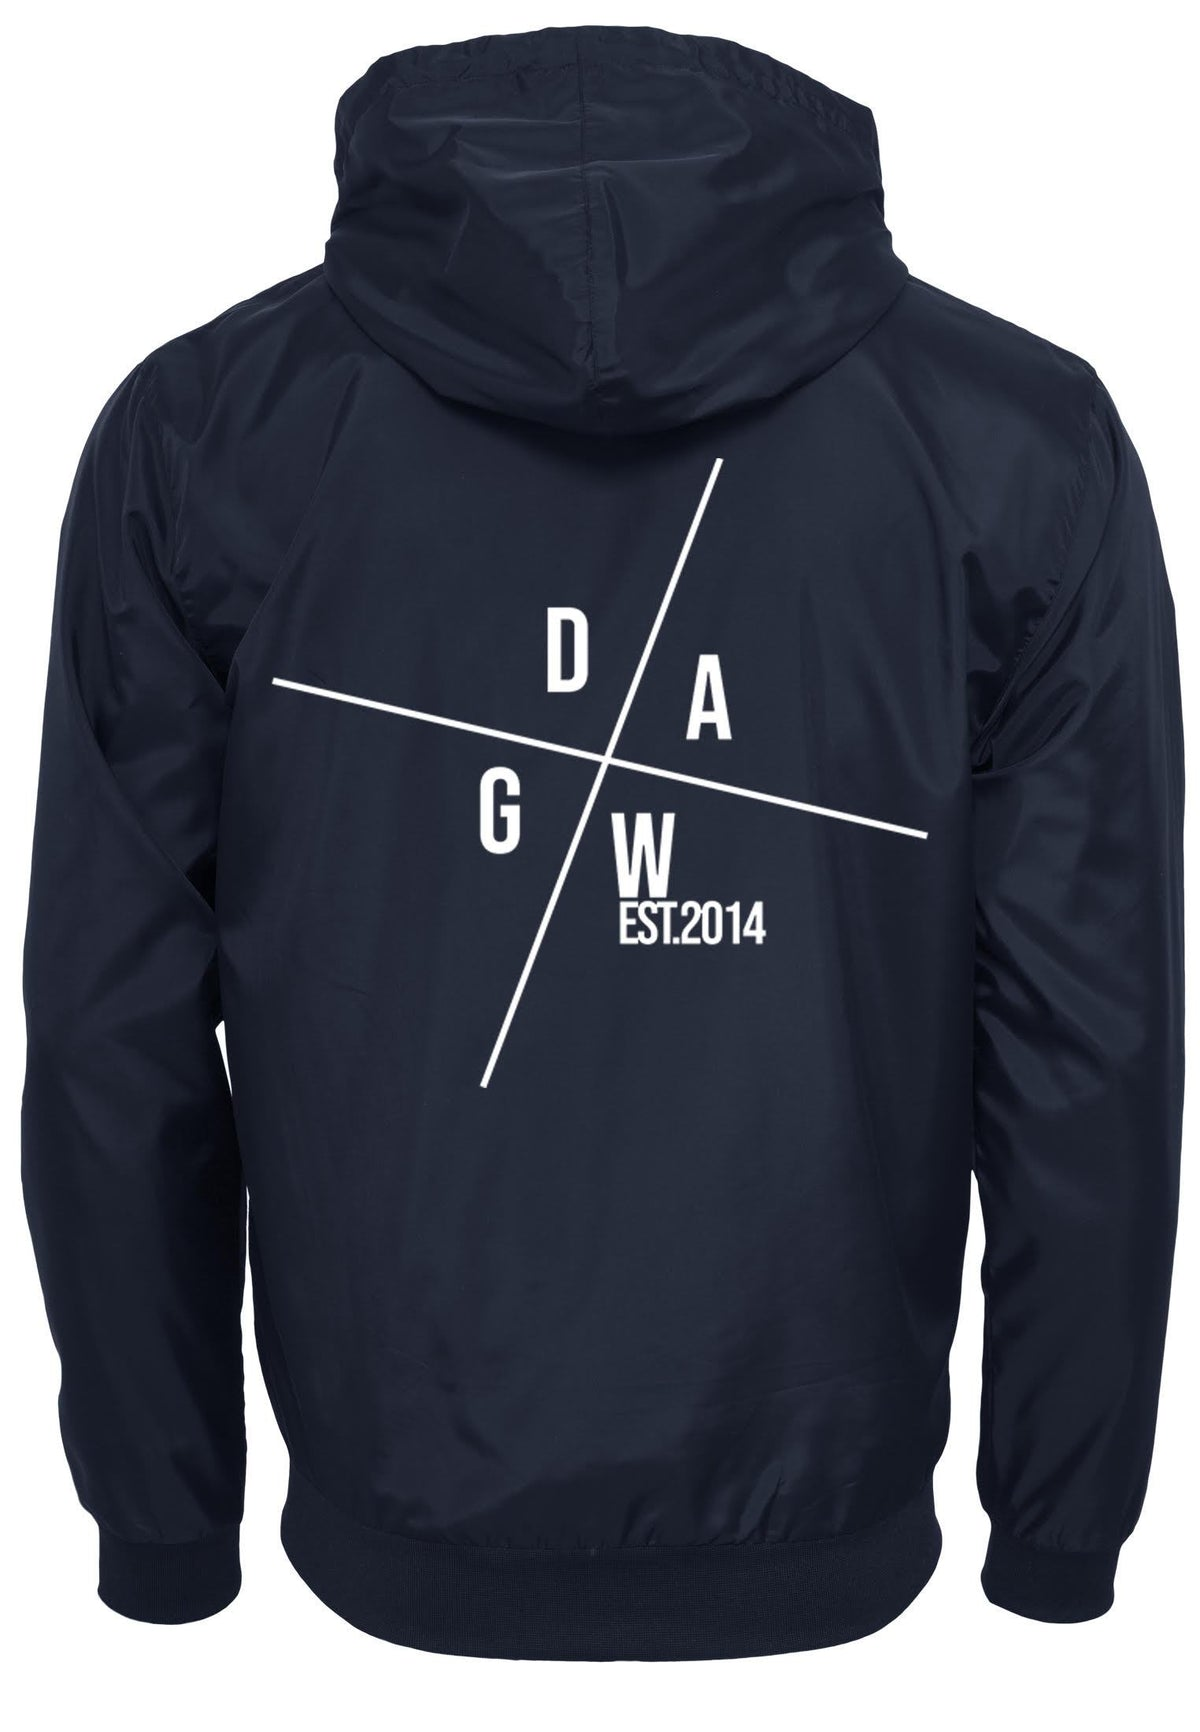 DAWG Compass Windrunner (BY016) - Front & Back Print DAWG S Navy